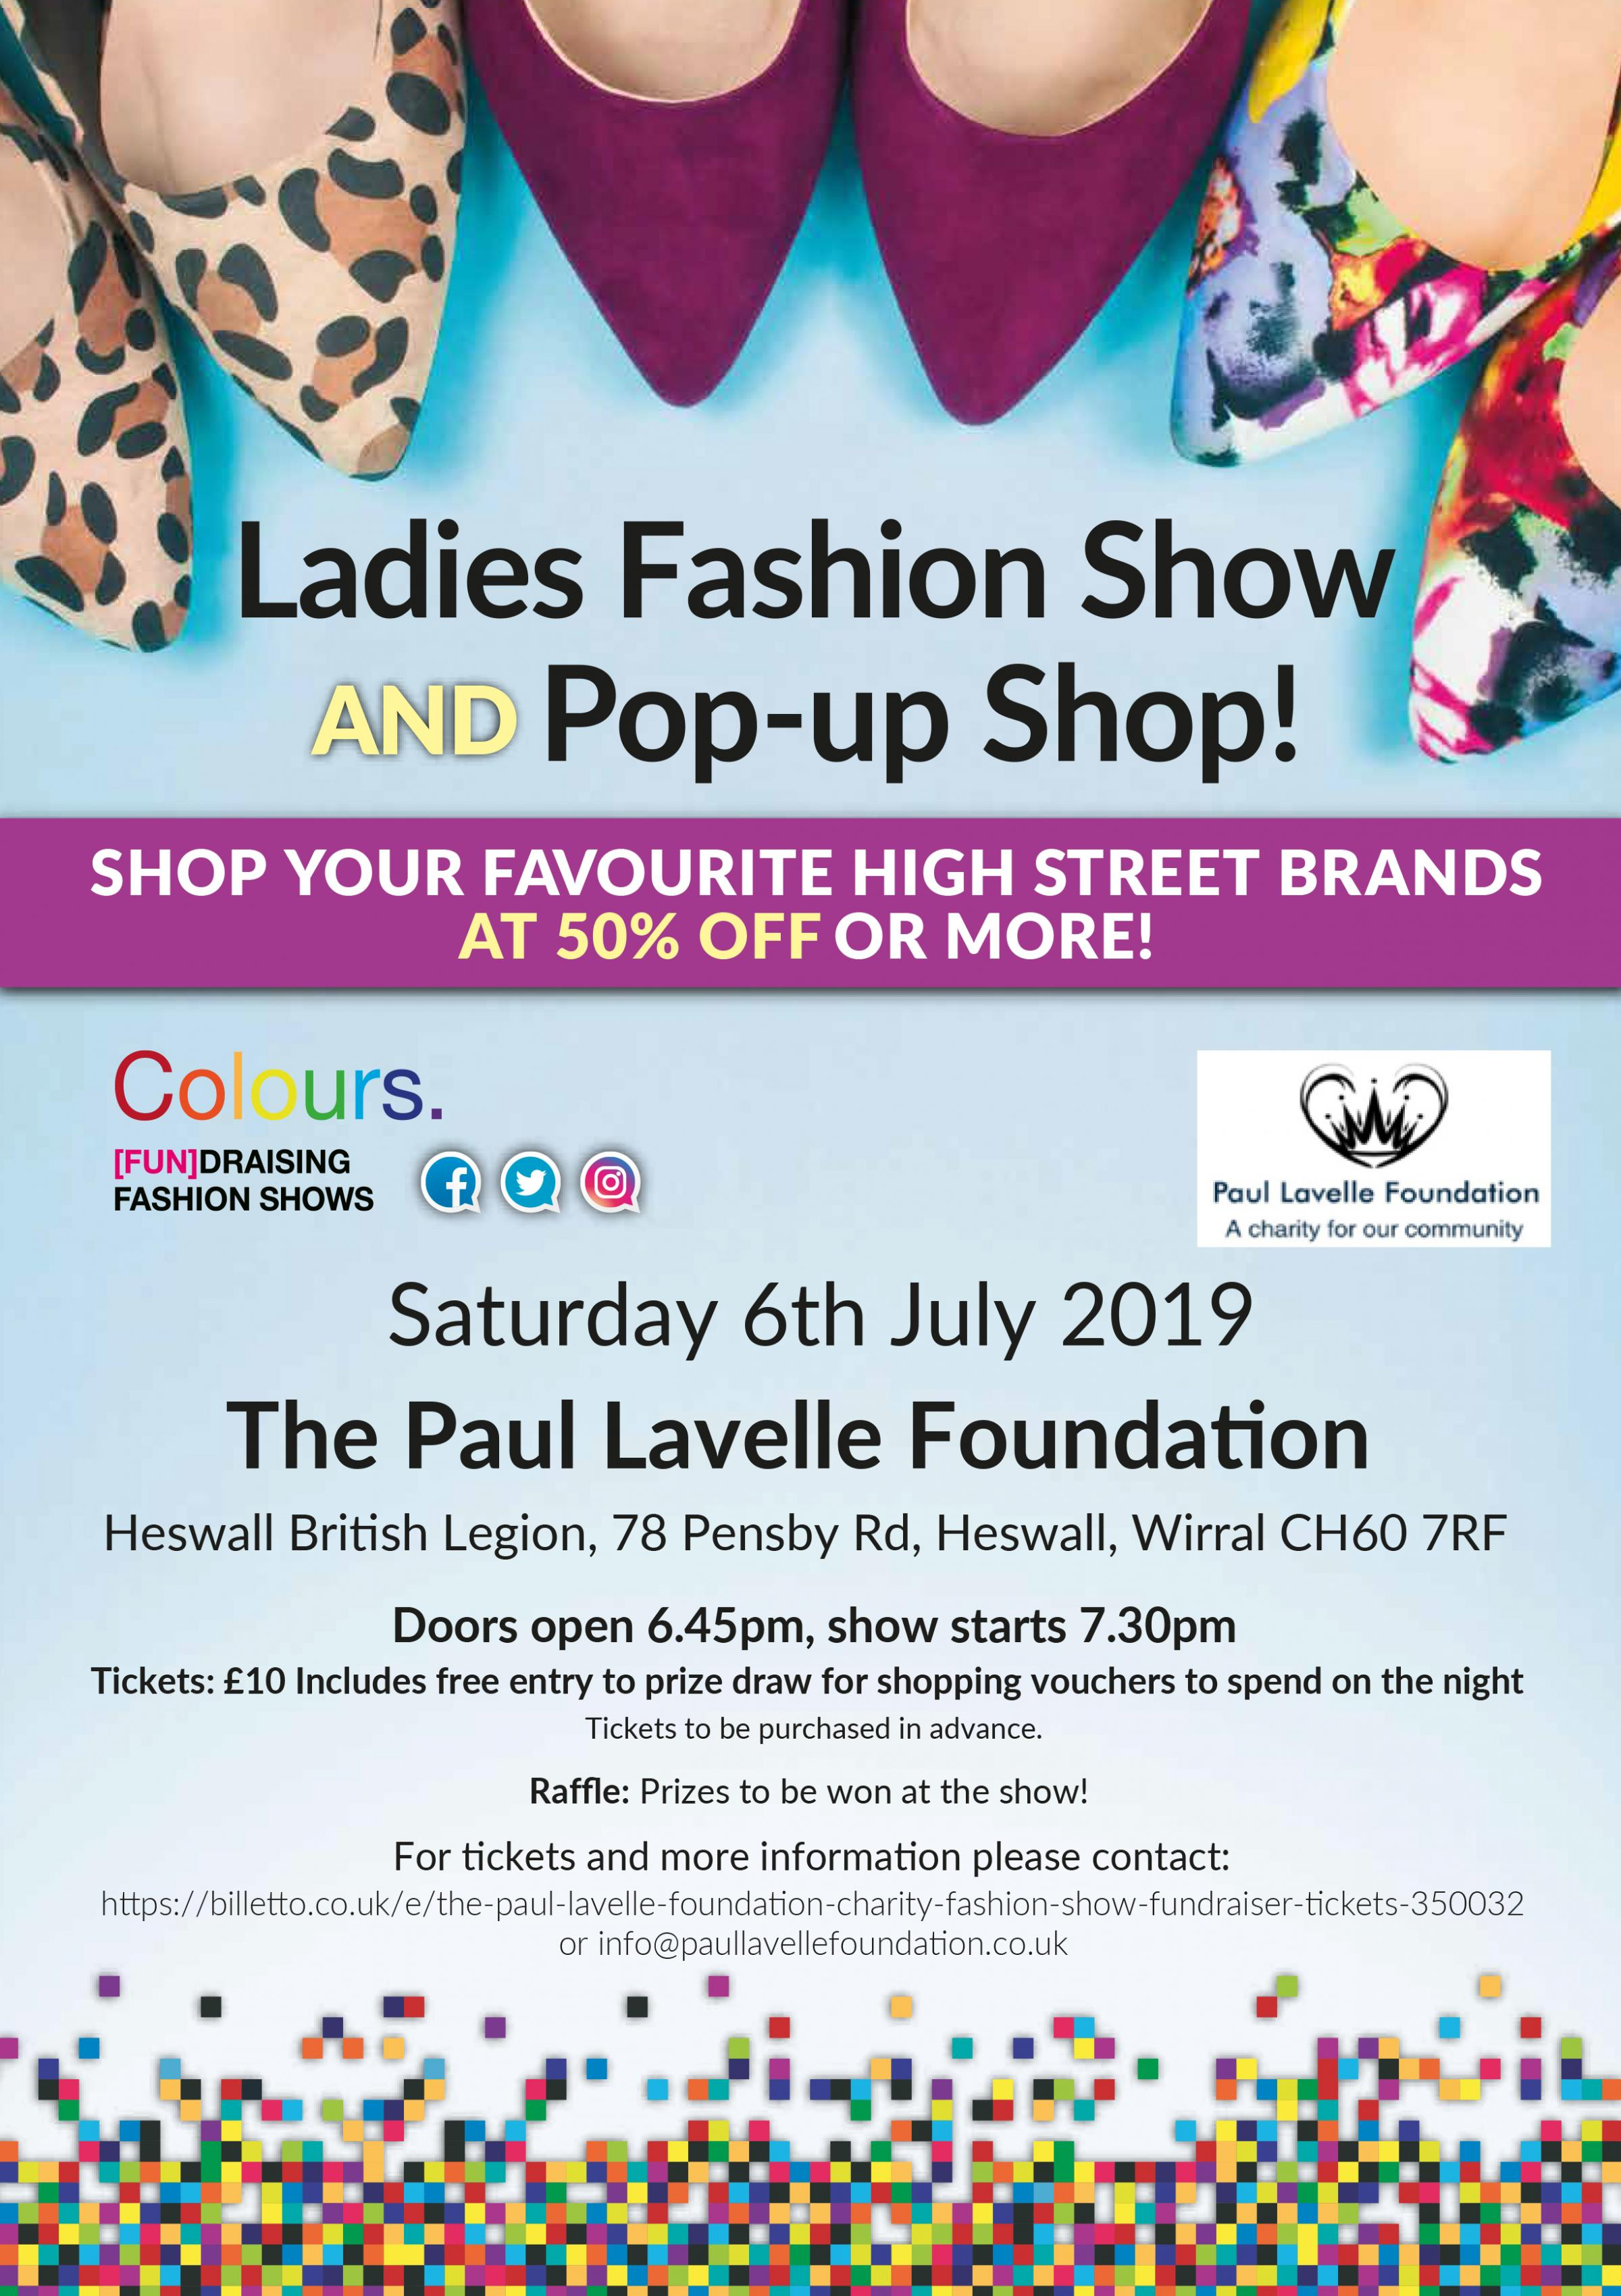 The Paul Lavelle Foundation Fashion Show Fundraiser